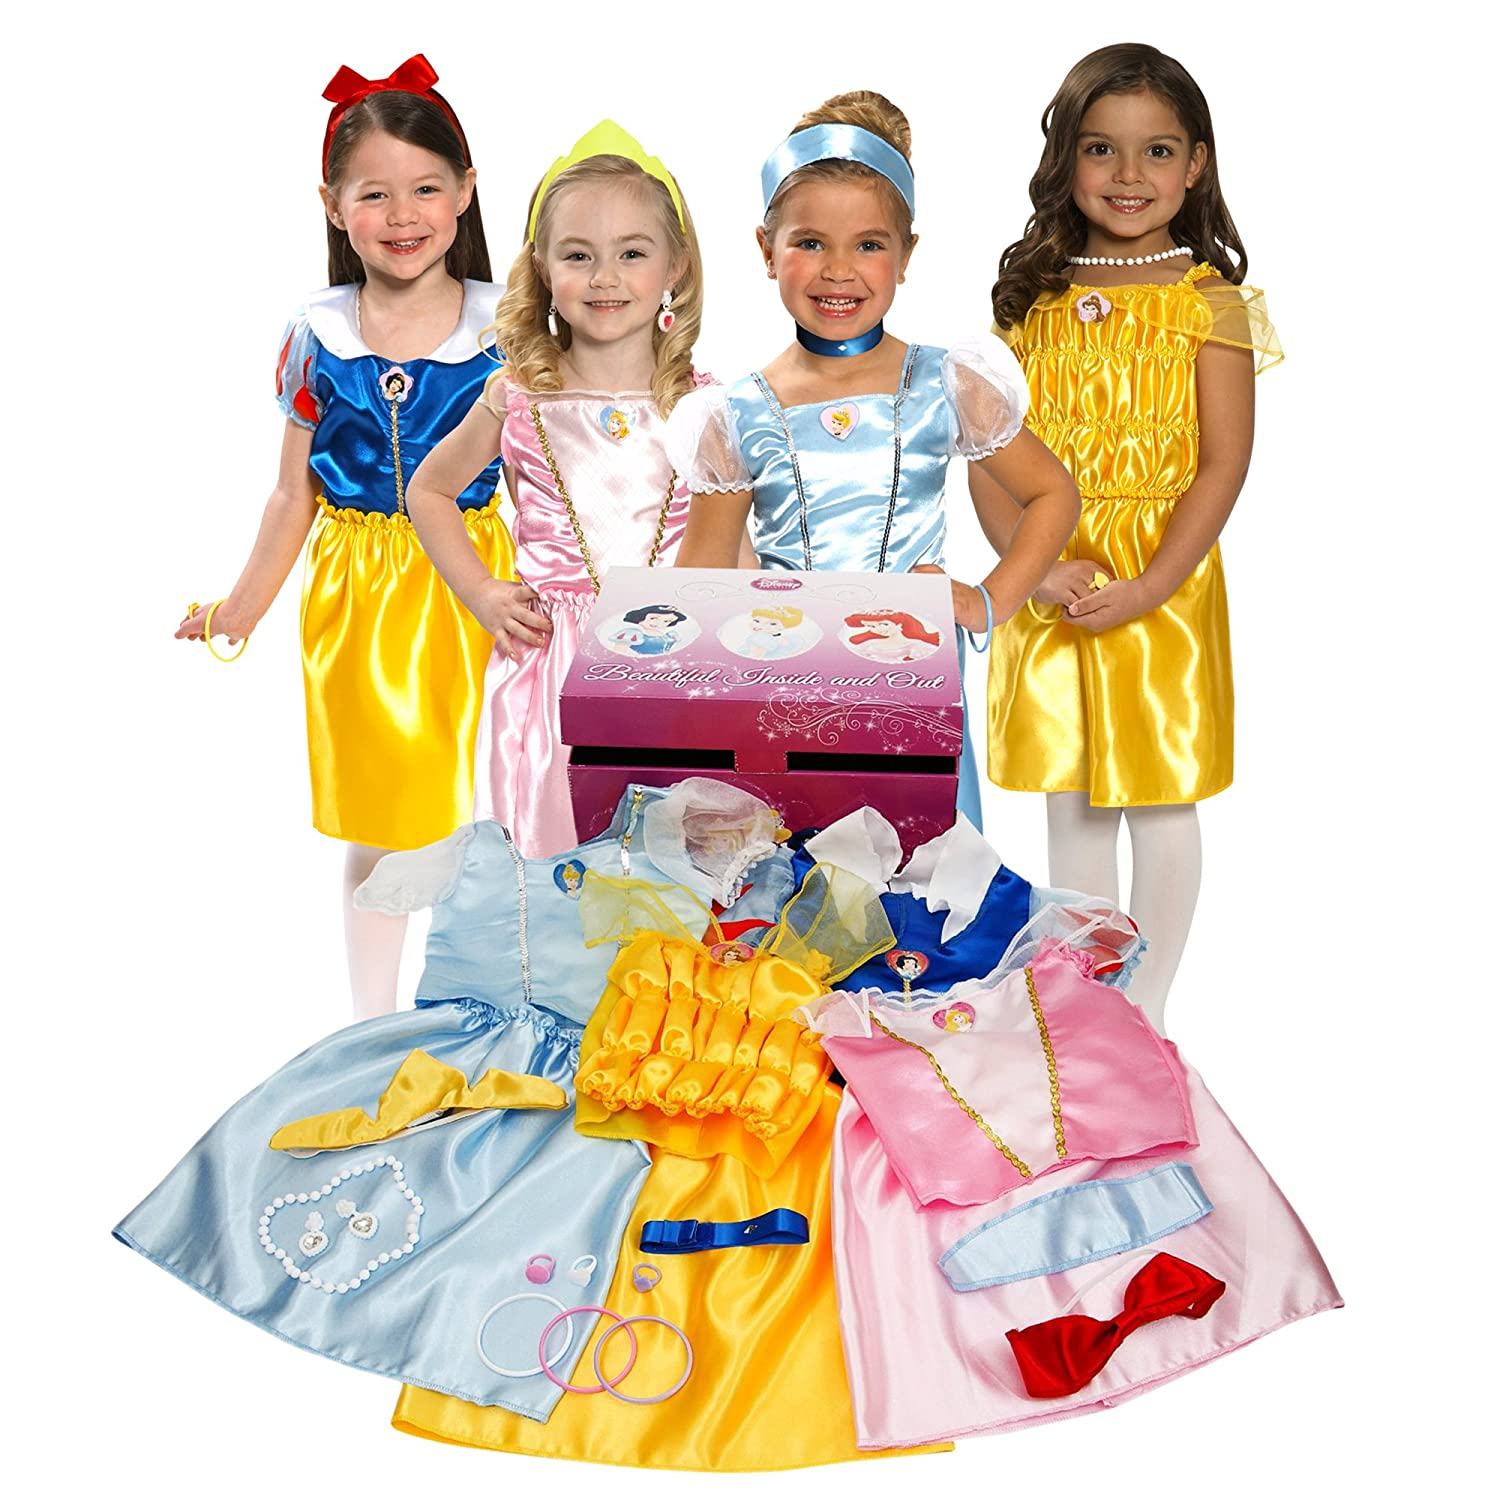 Amazon.com: Disney Princess Dress Up Trunk - Amazon Exclusive: Toys & Games